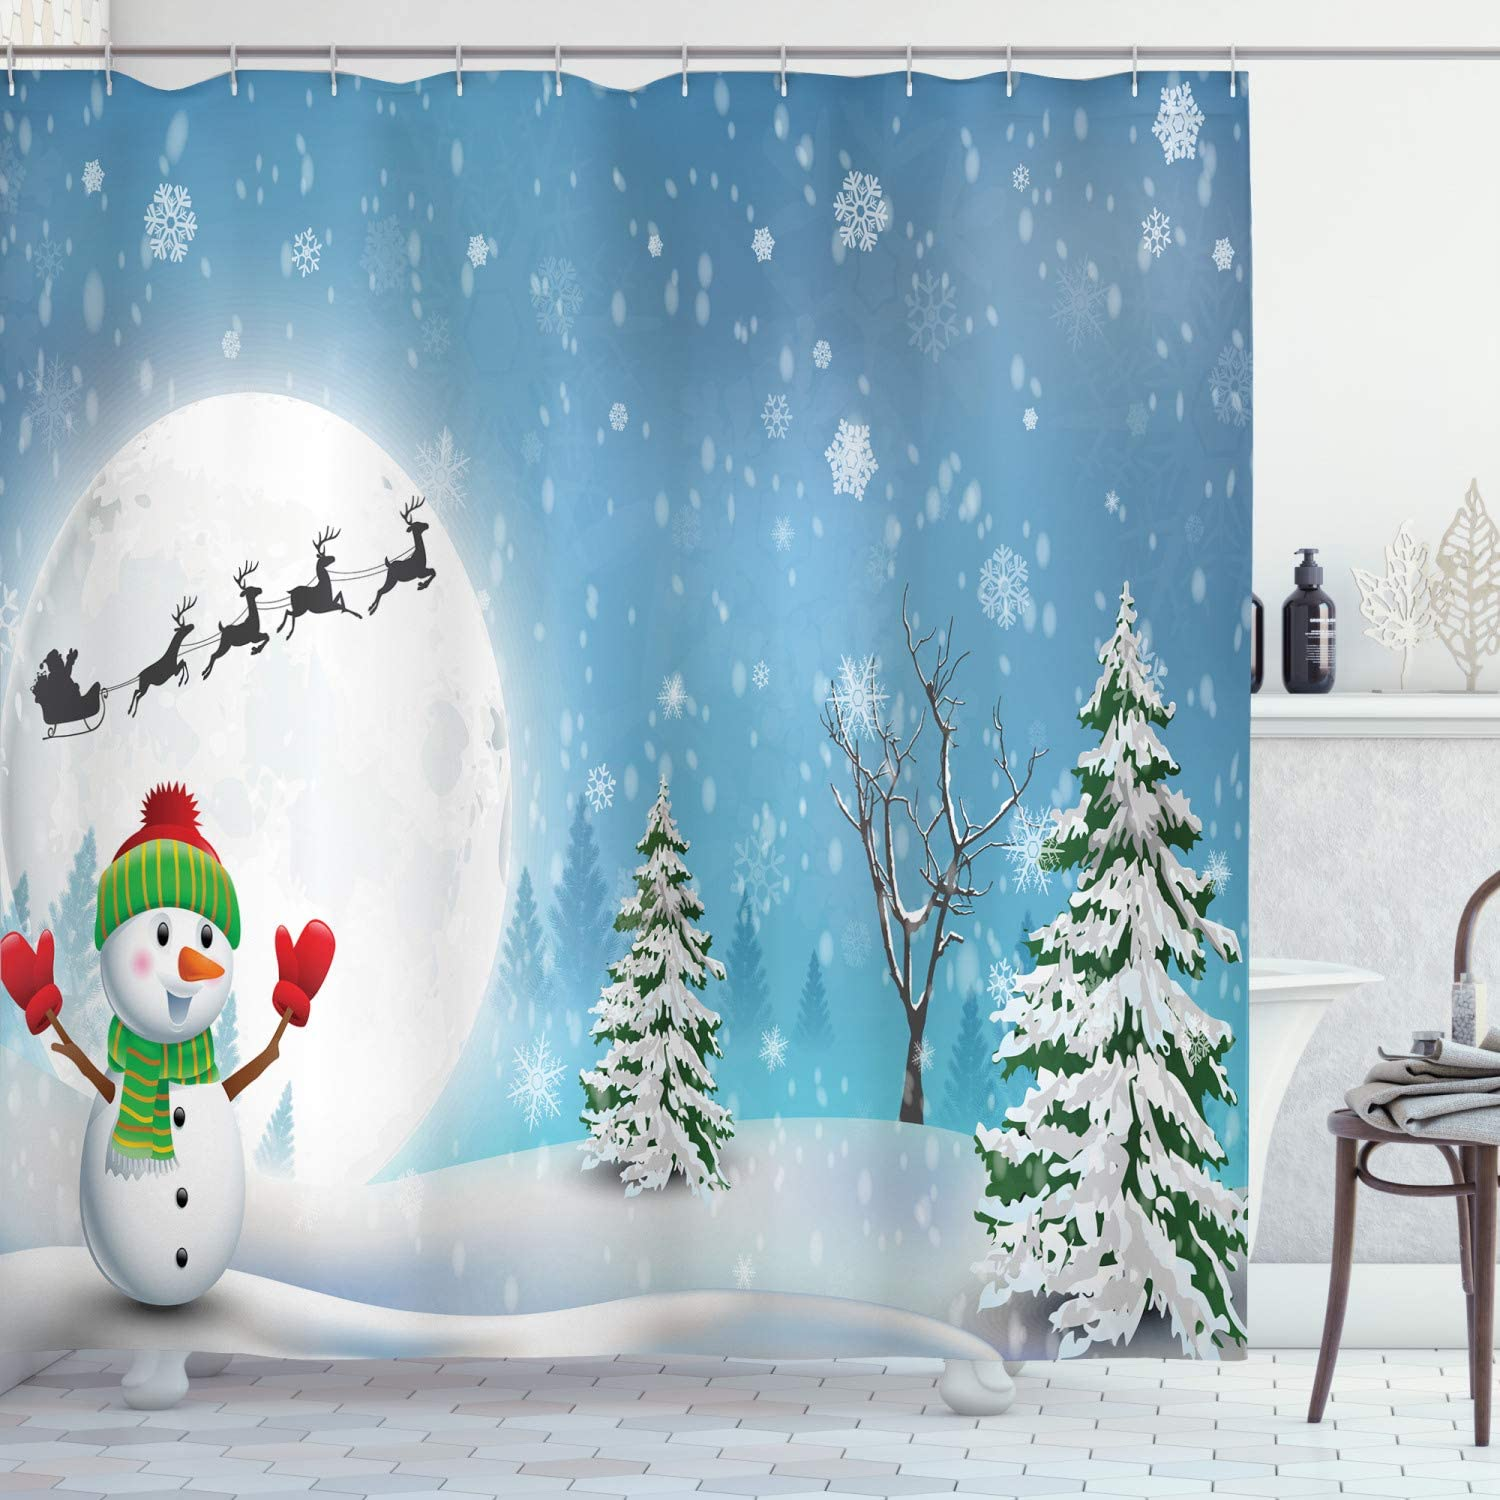 All items free shipping Ambesonne Christmas Shower Curtain Jolly Full Snowman Moo Under Max 41% OFF